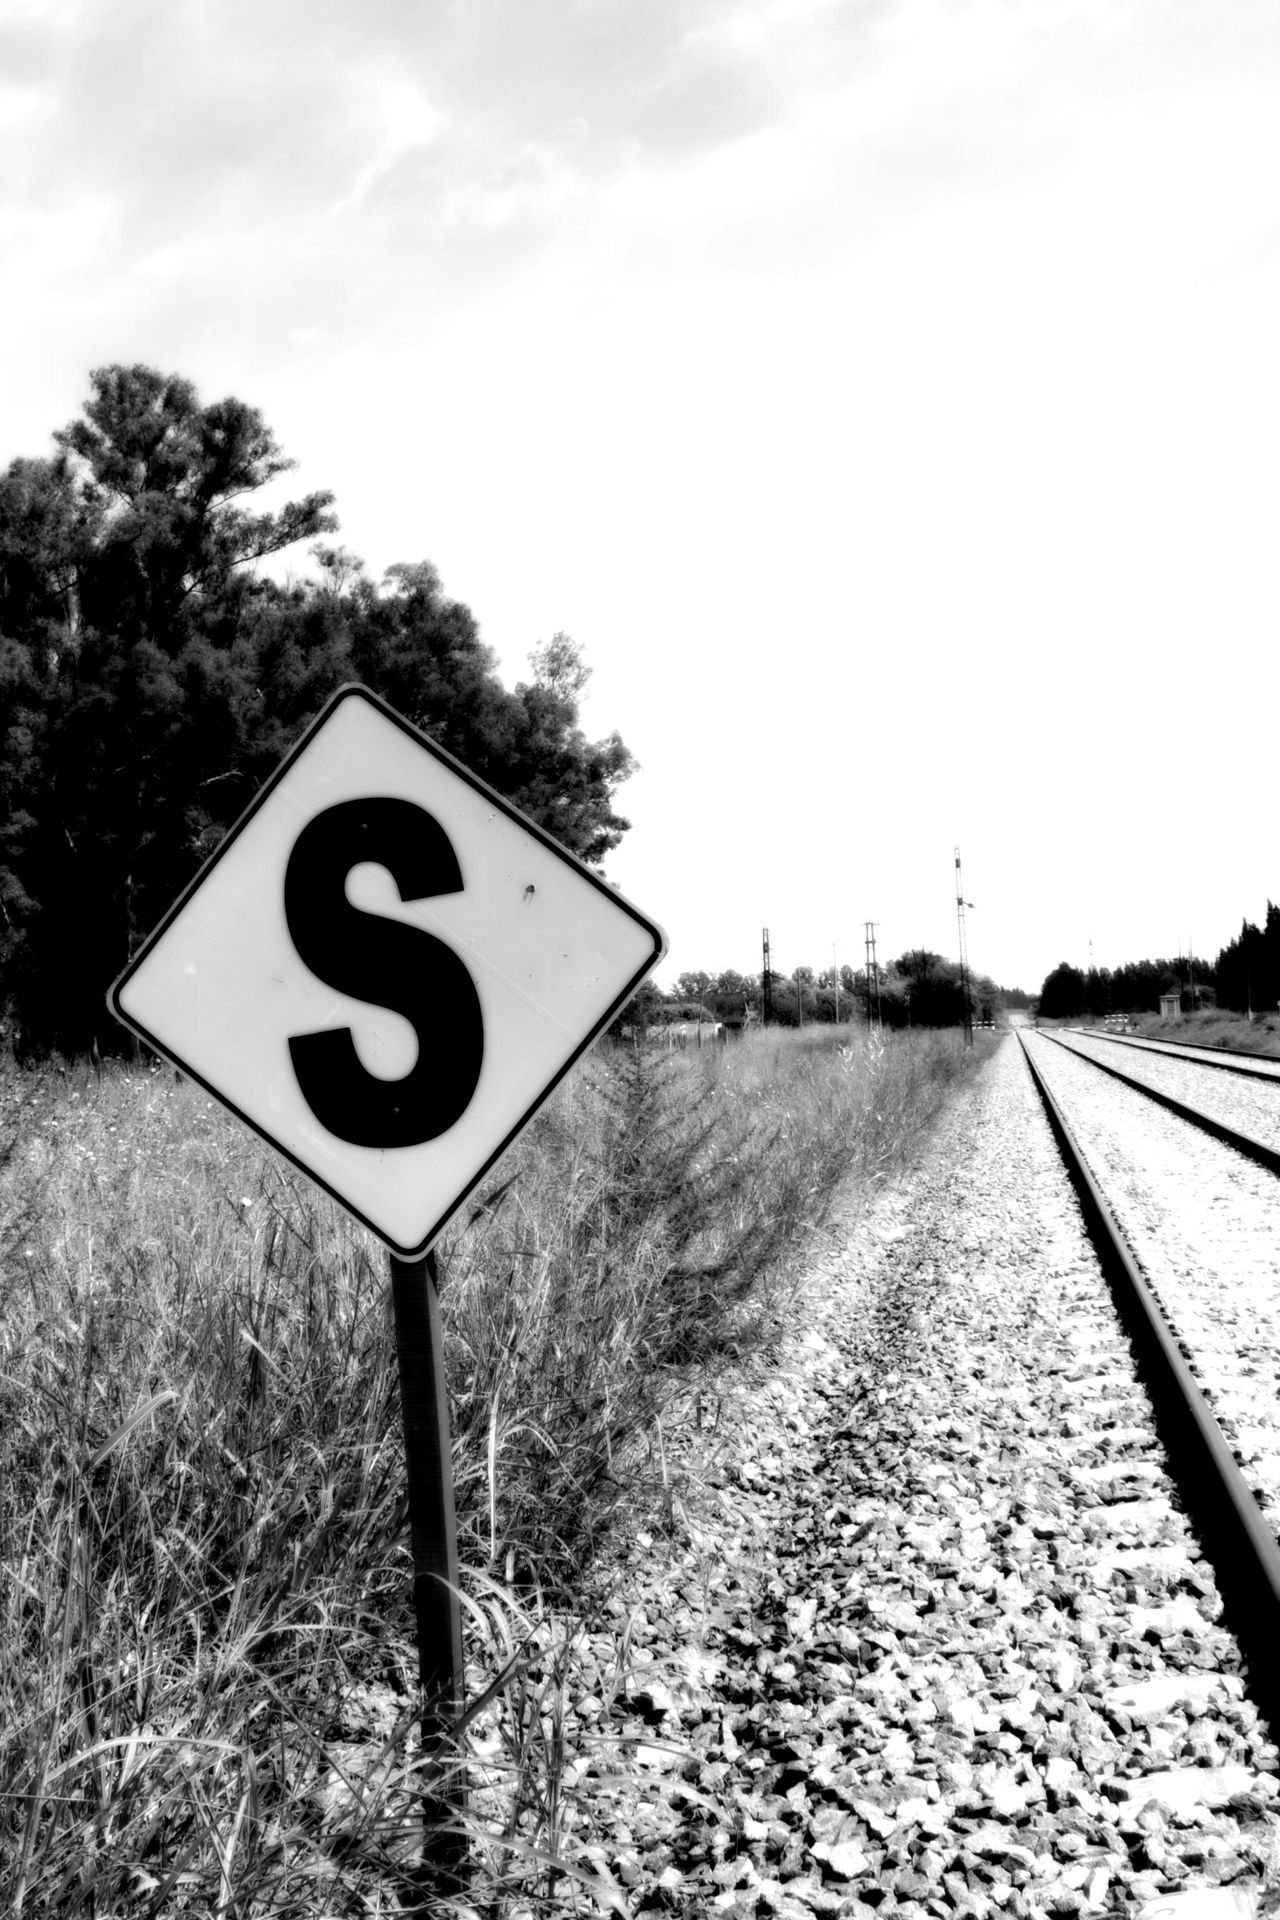 Road Sign Tree Sky Nature Outdoors Speed Limit Sign Communication Day The Way Forward Grass No People Blackandwhite Rails